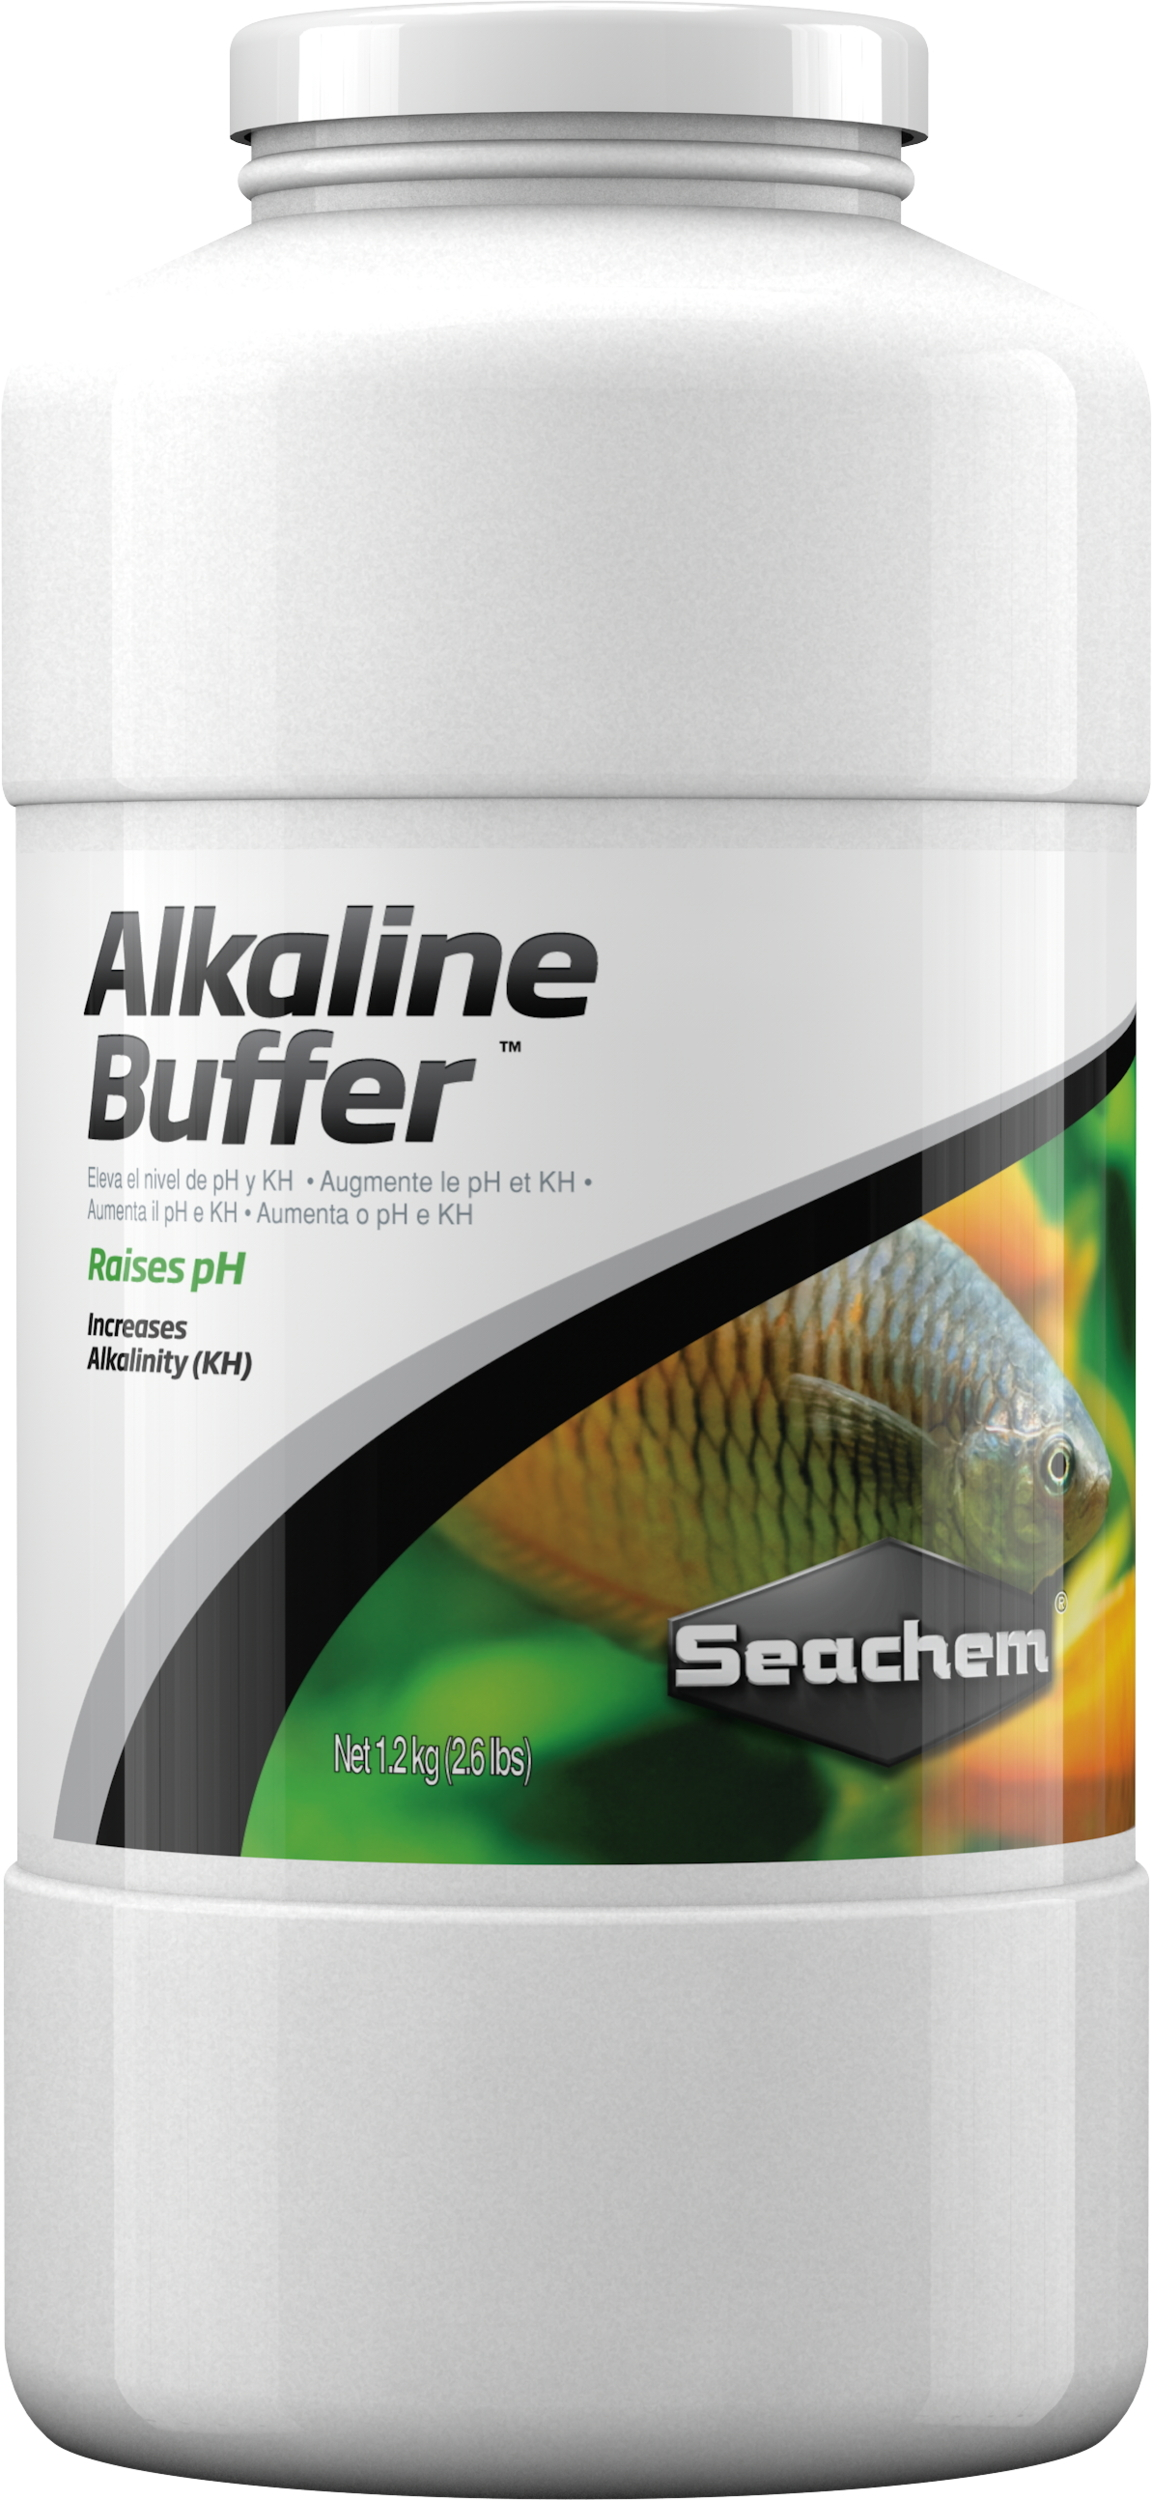 SEACHEM Alkaline Buffer 1,2 Kg solution tampon pour augmenter et stabilser le pH entre 7.4 et 8.4